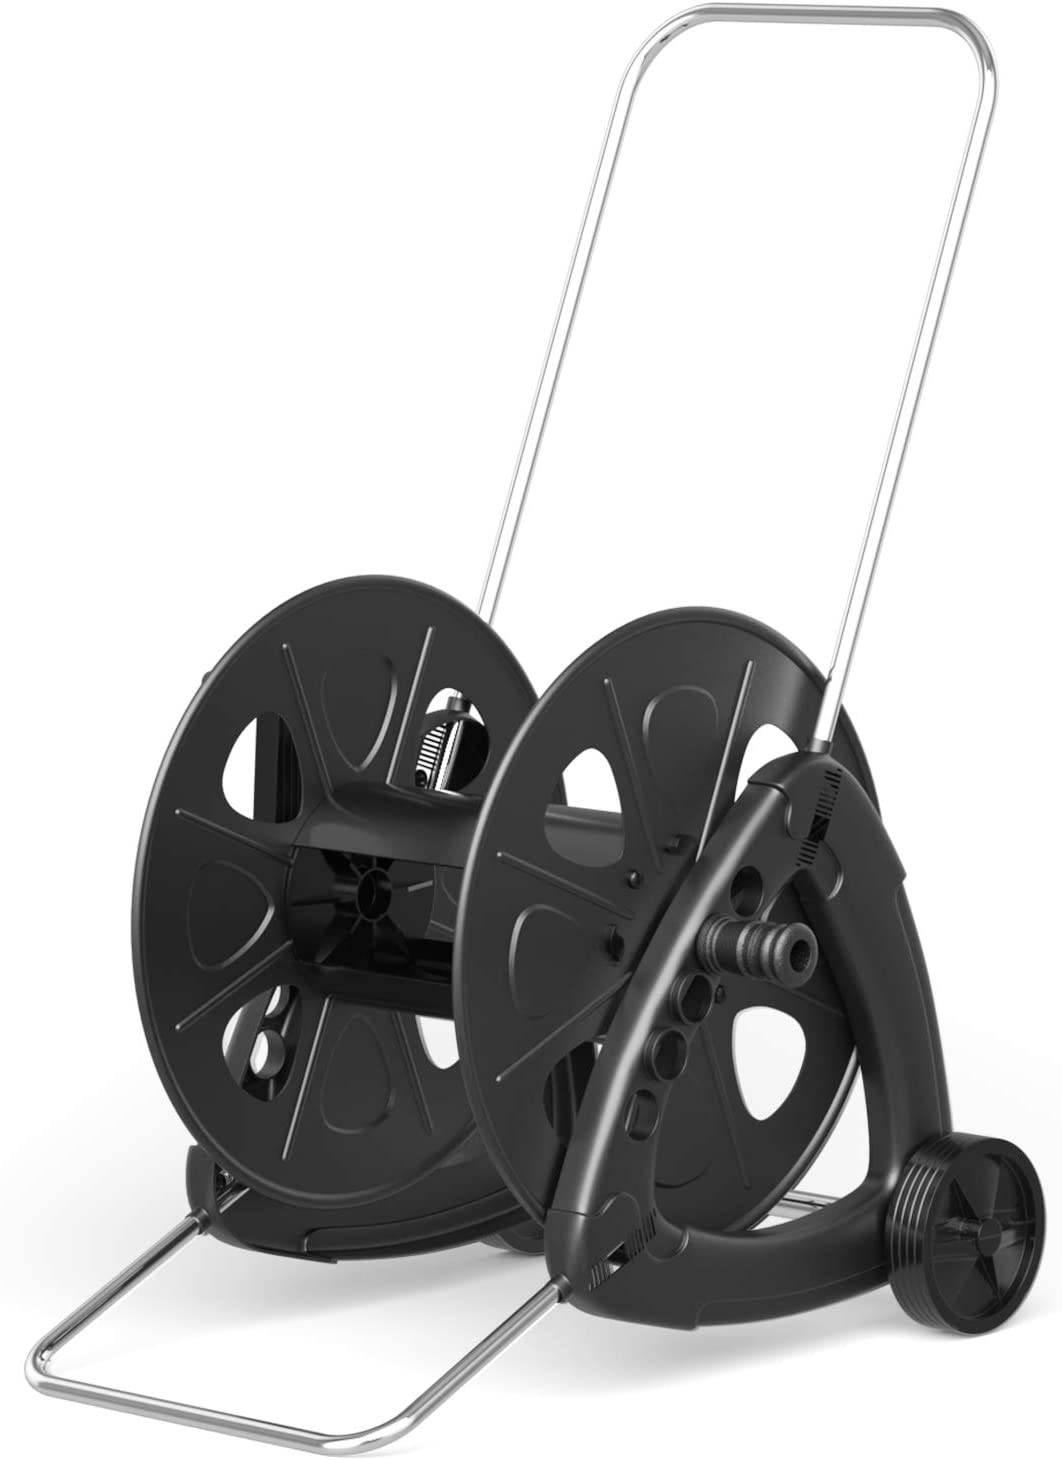 Goplus Wheeled Hose Reel Cart for Garden Patio Lawn, Hose Storage Cart w/Quick Connectors and Adjustable Nozzle, Max 328ft Capacity, Made in Italy